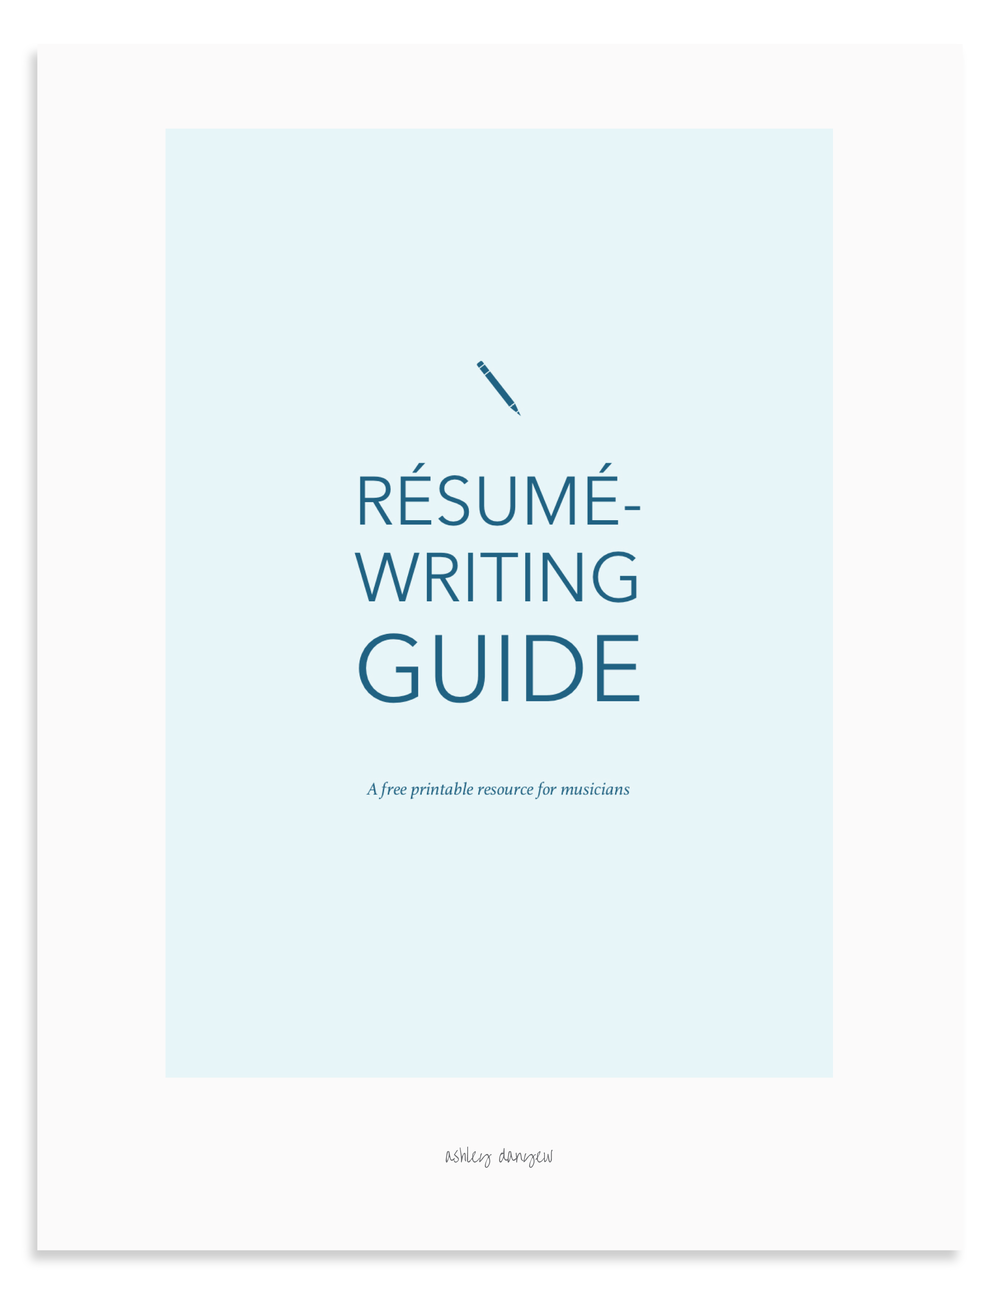 Resume-Writing Guide-30.png